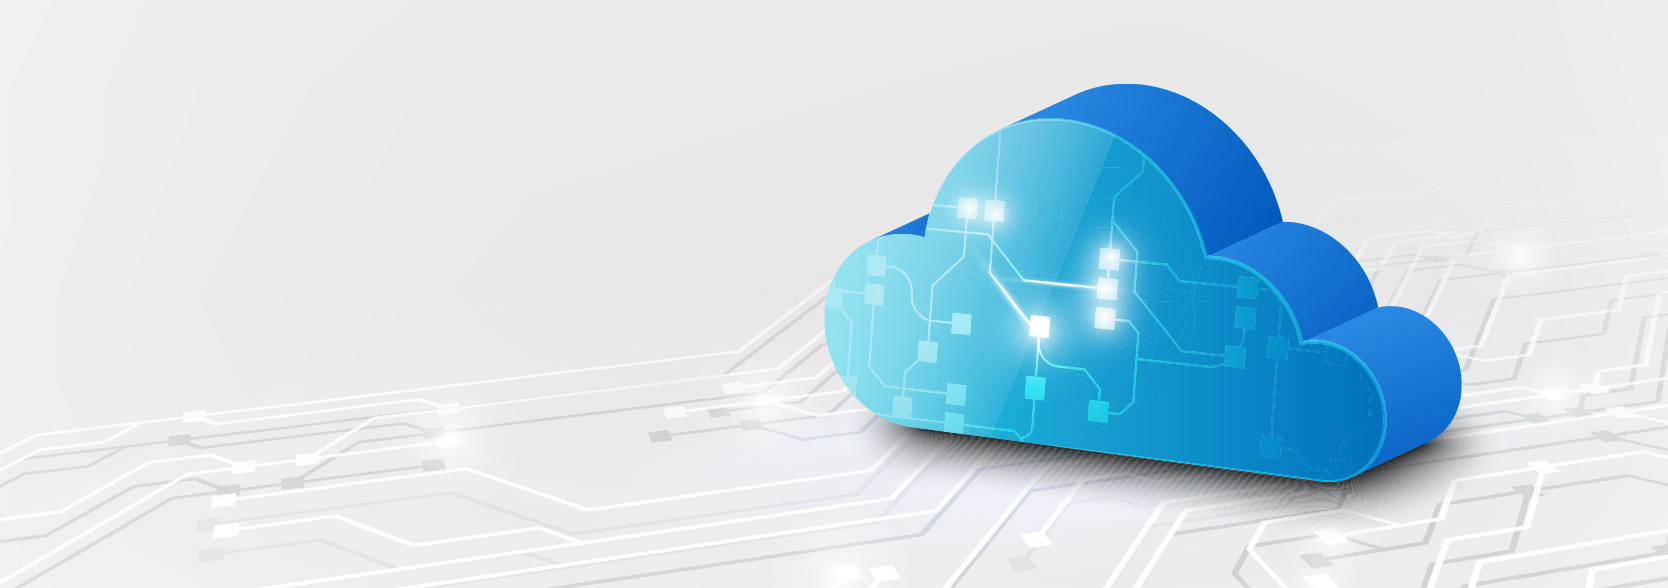 How Unified Communications (UC) Can Help Businesses Reopen After COVID-19